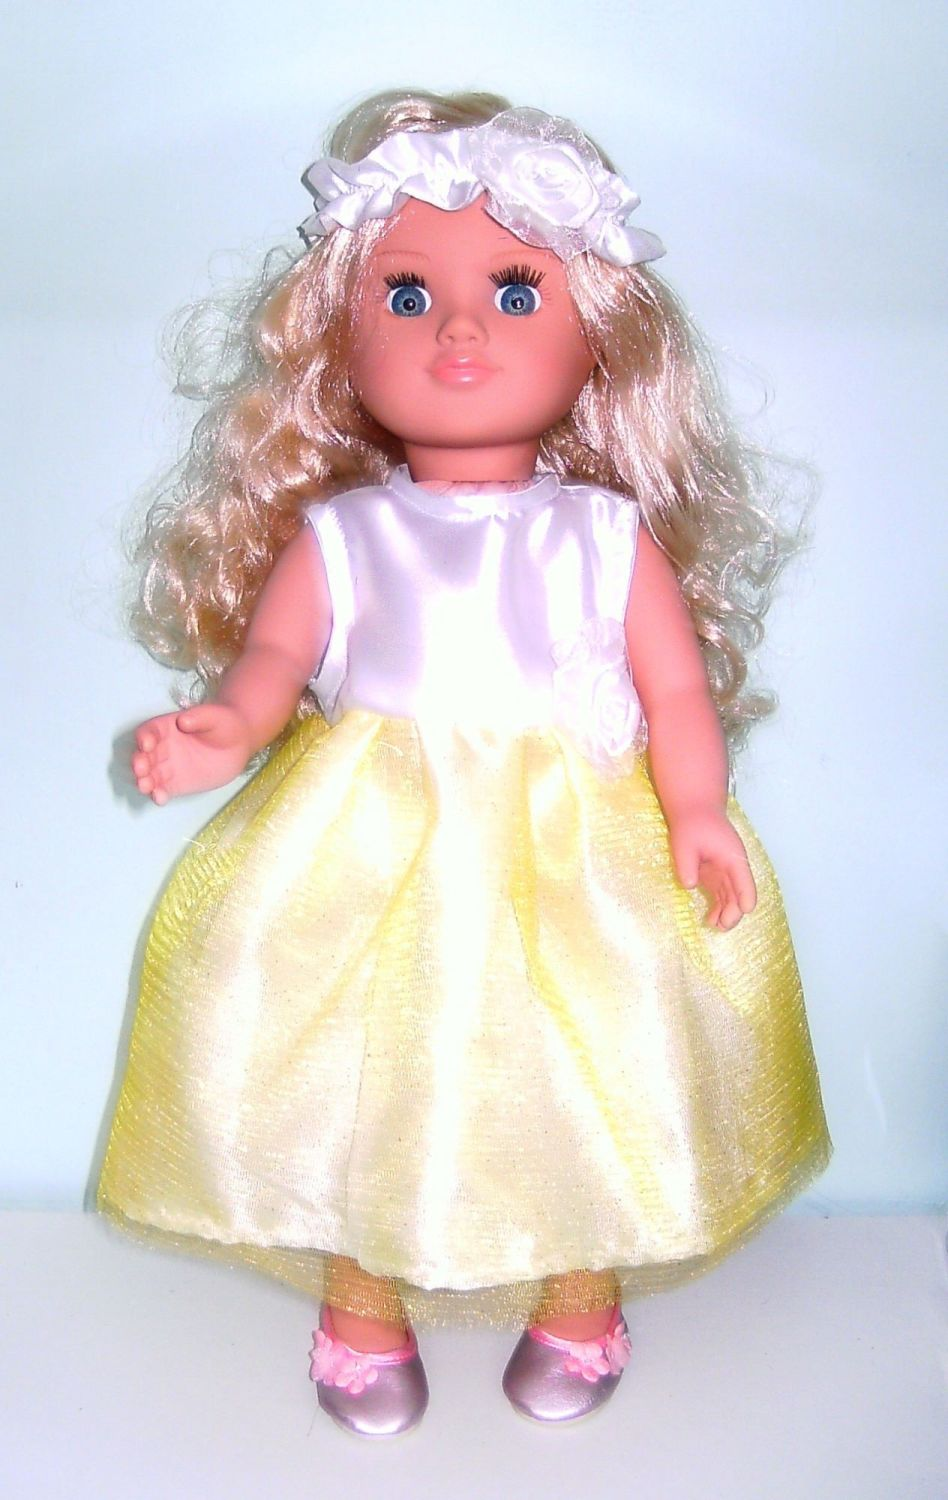 party dress to fit 18 inch Sindy dolls